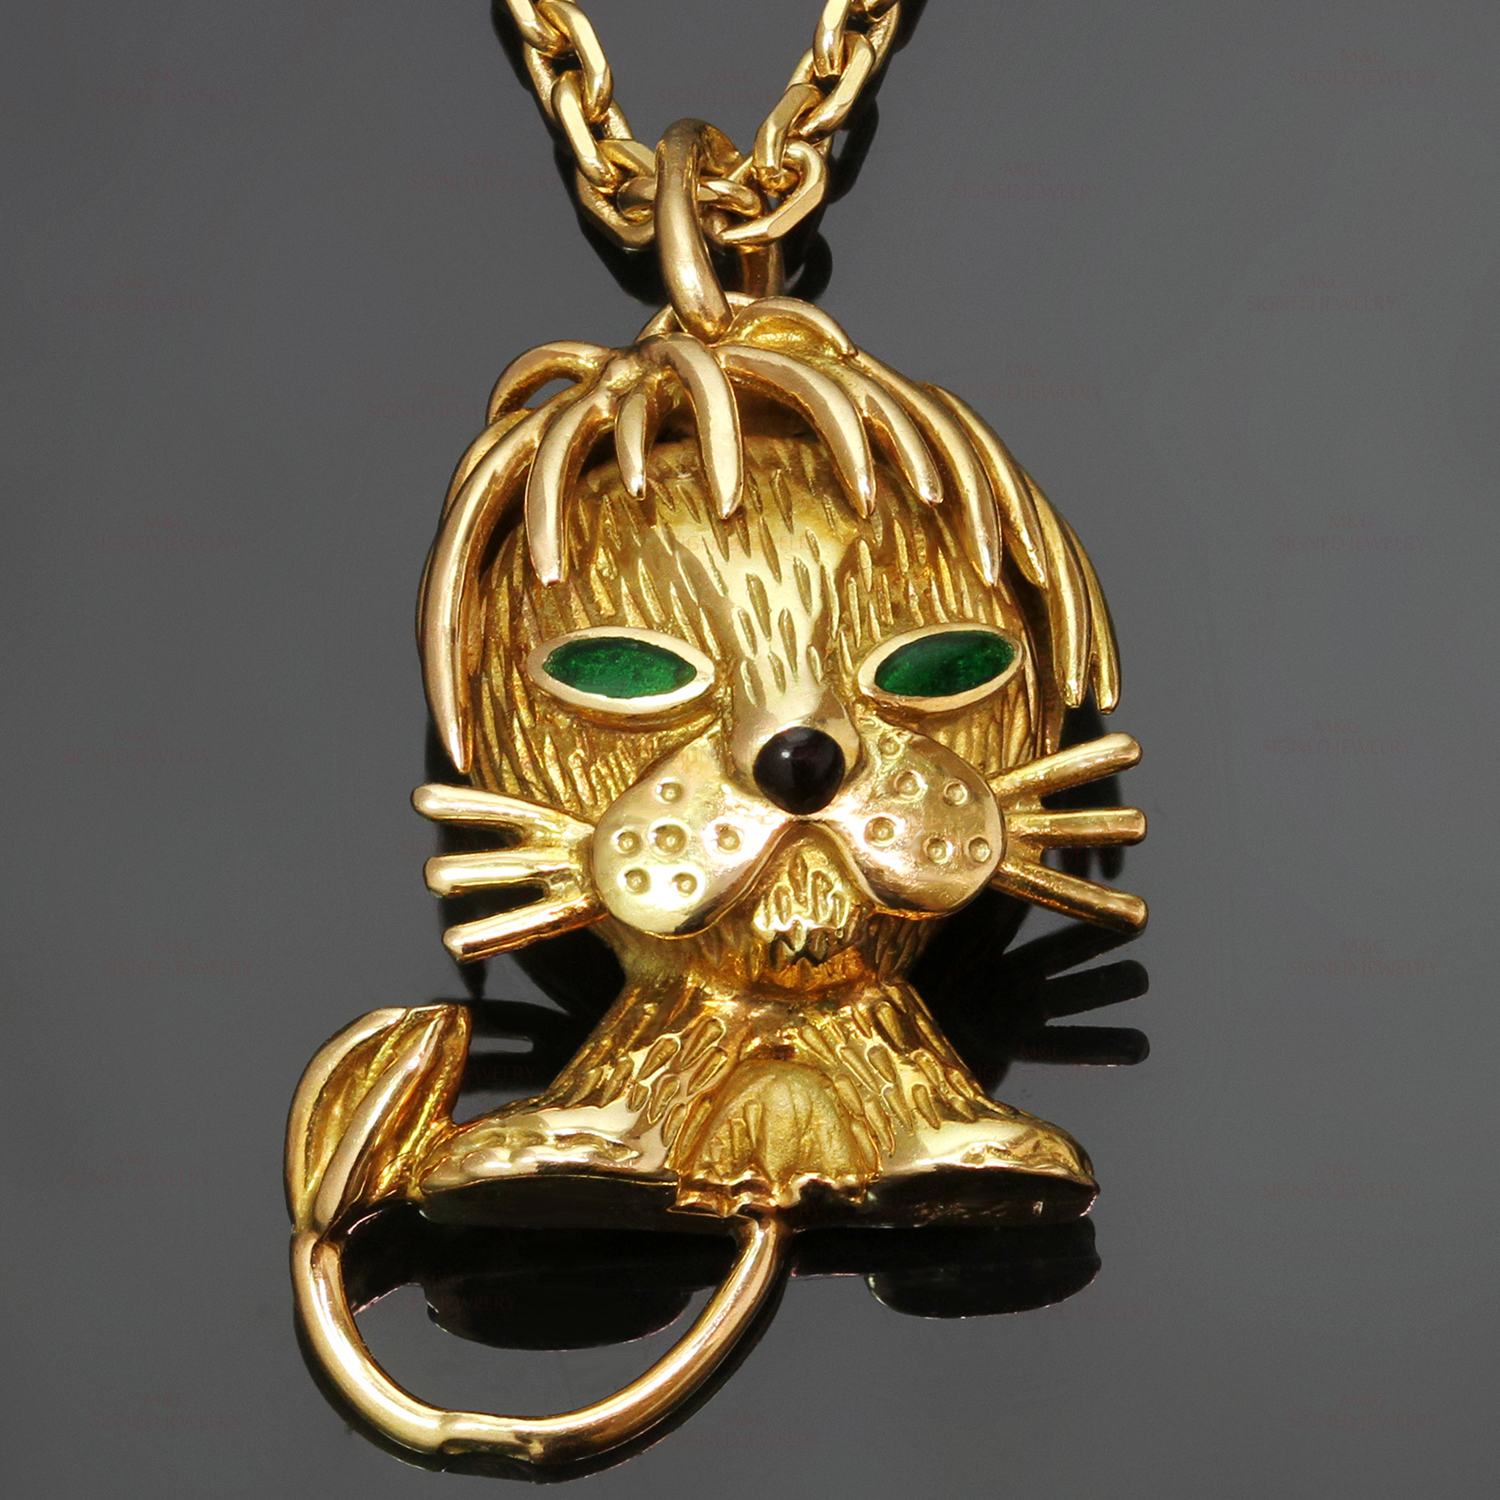 gold pendant products lion head necklace conscious apparel trap